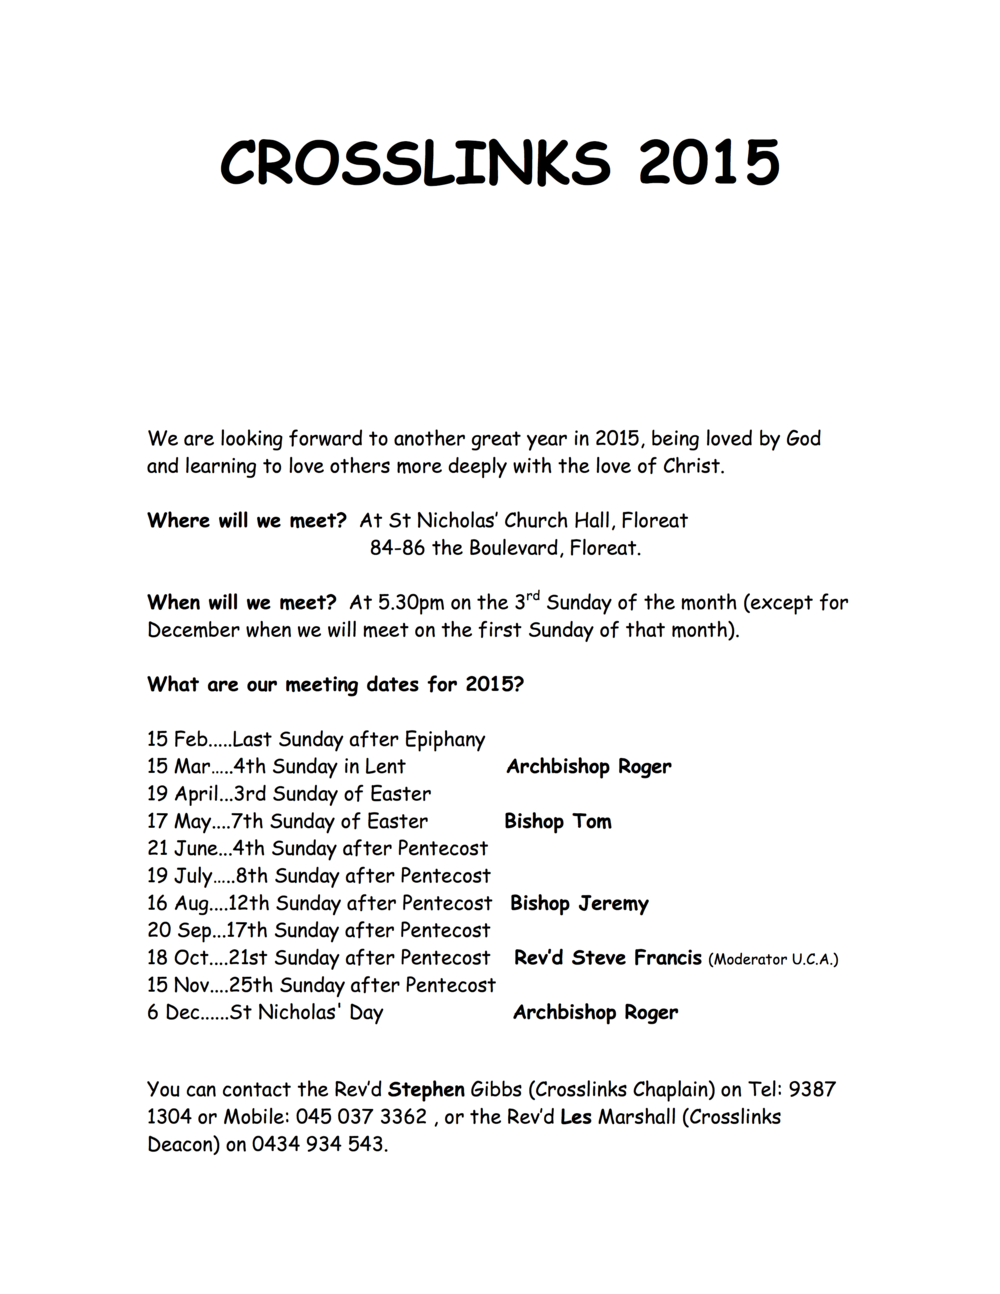 CROSSLINKS Flyer 2015 .png